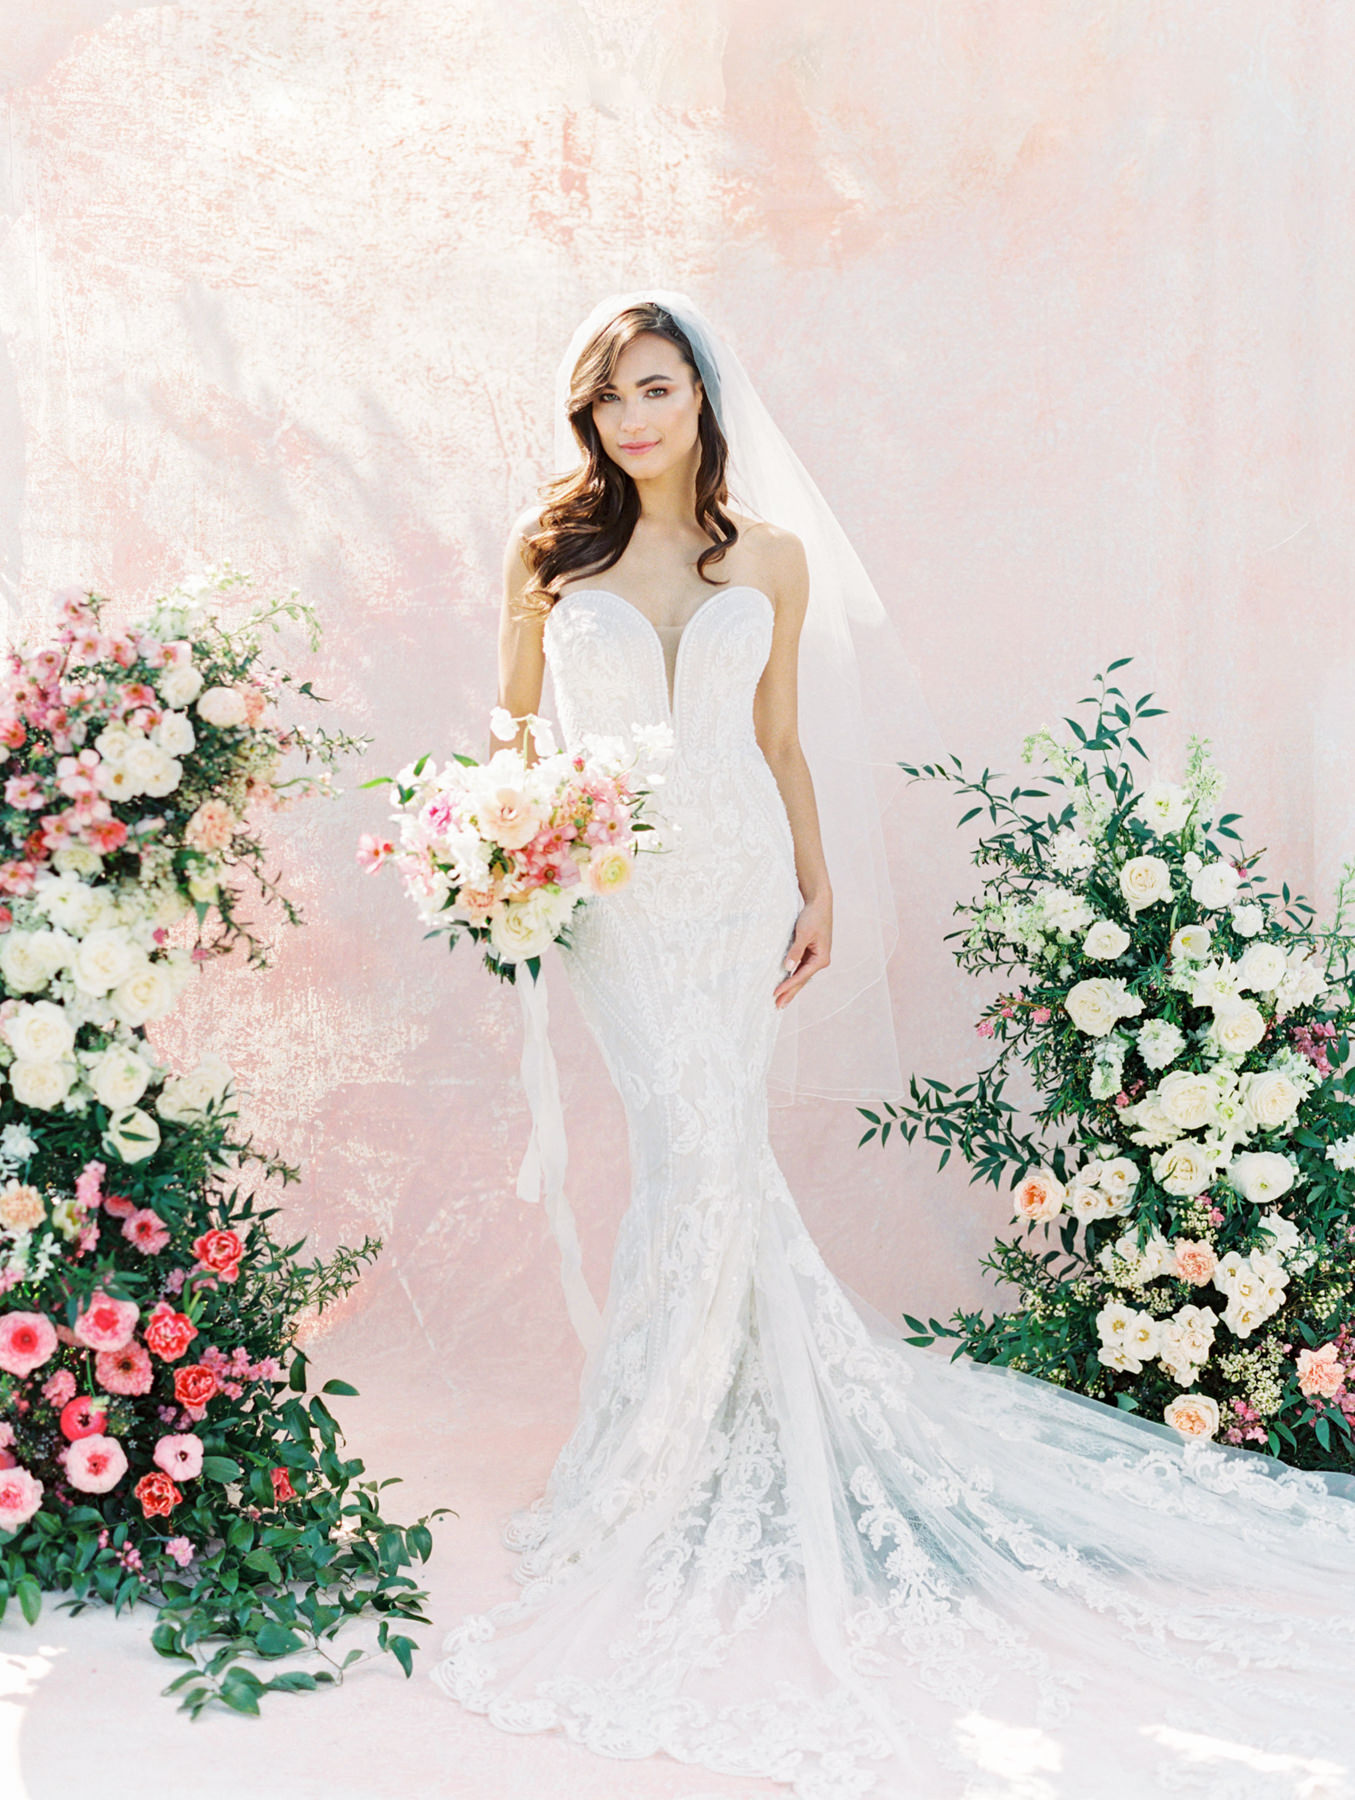 Bouquet and asymmetrical floral arch with pink and ivory roses, sweet peas, ranunculus, carnations, and greenery with a pink painterly backdrop. Martina Liana 1060 beaded strapless fit-and-flare lace gown from The White Flower. Cavin Elizabeth Photography - film photographer.